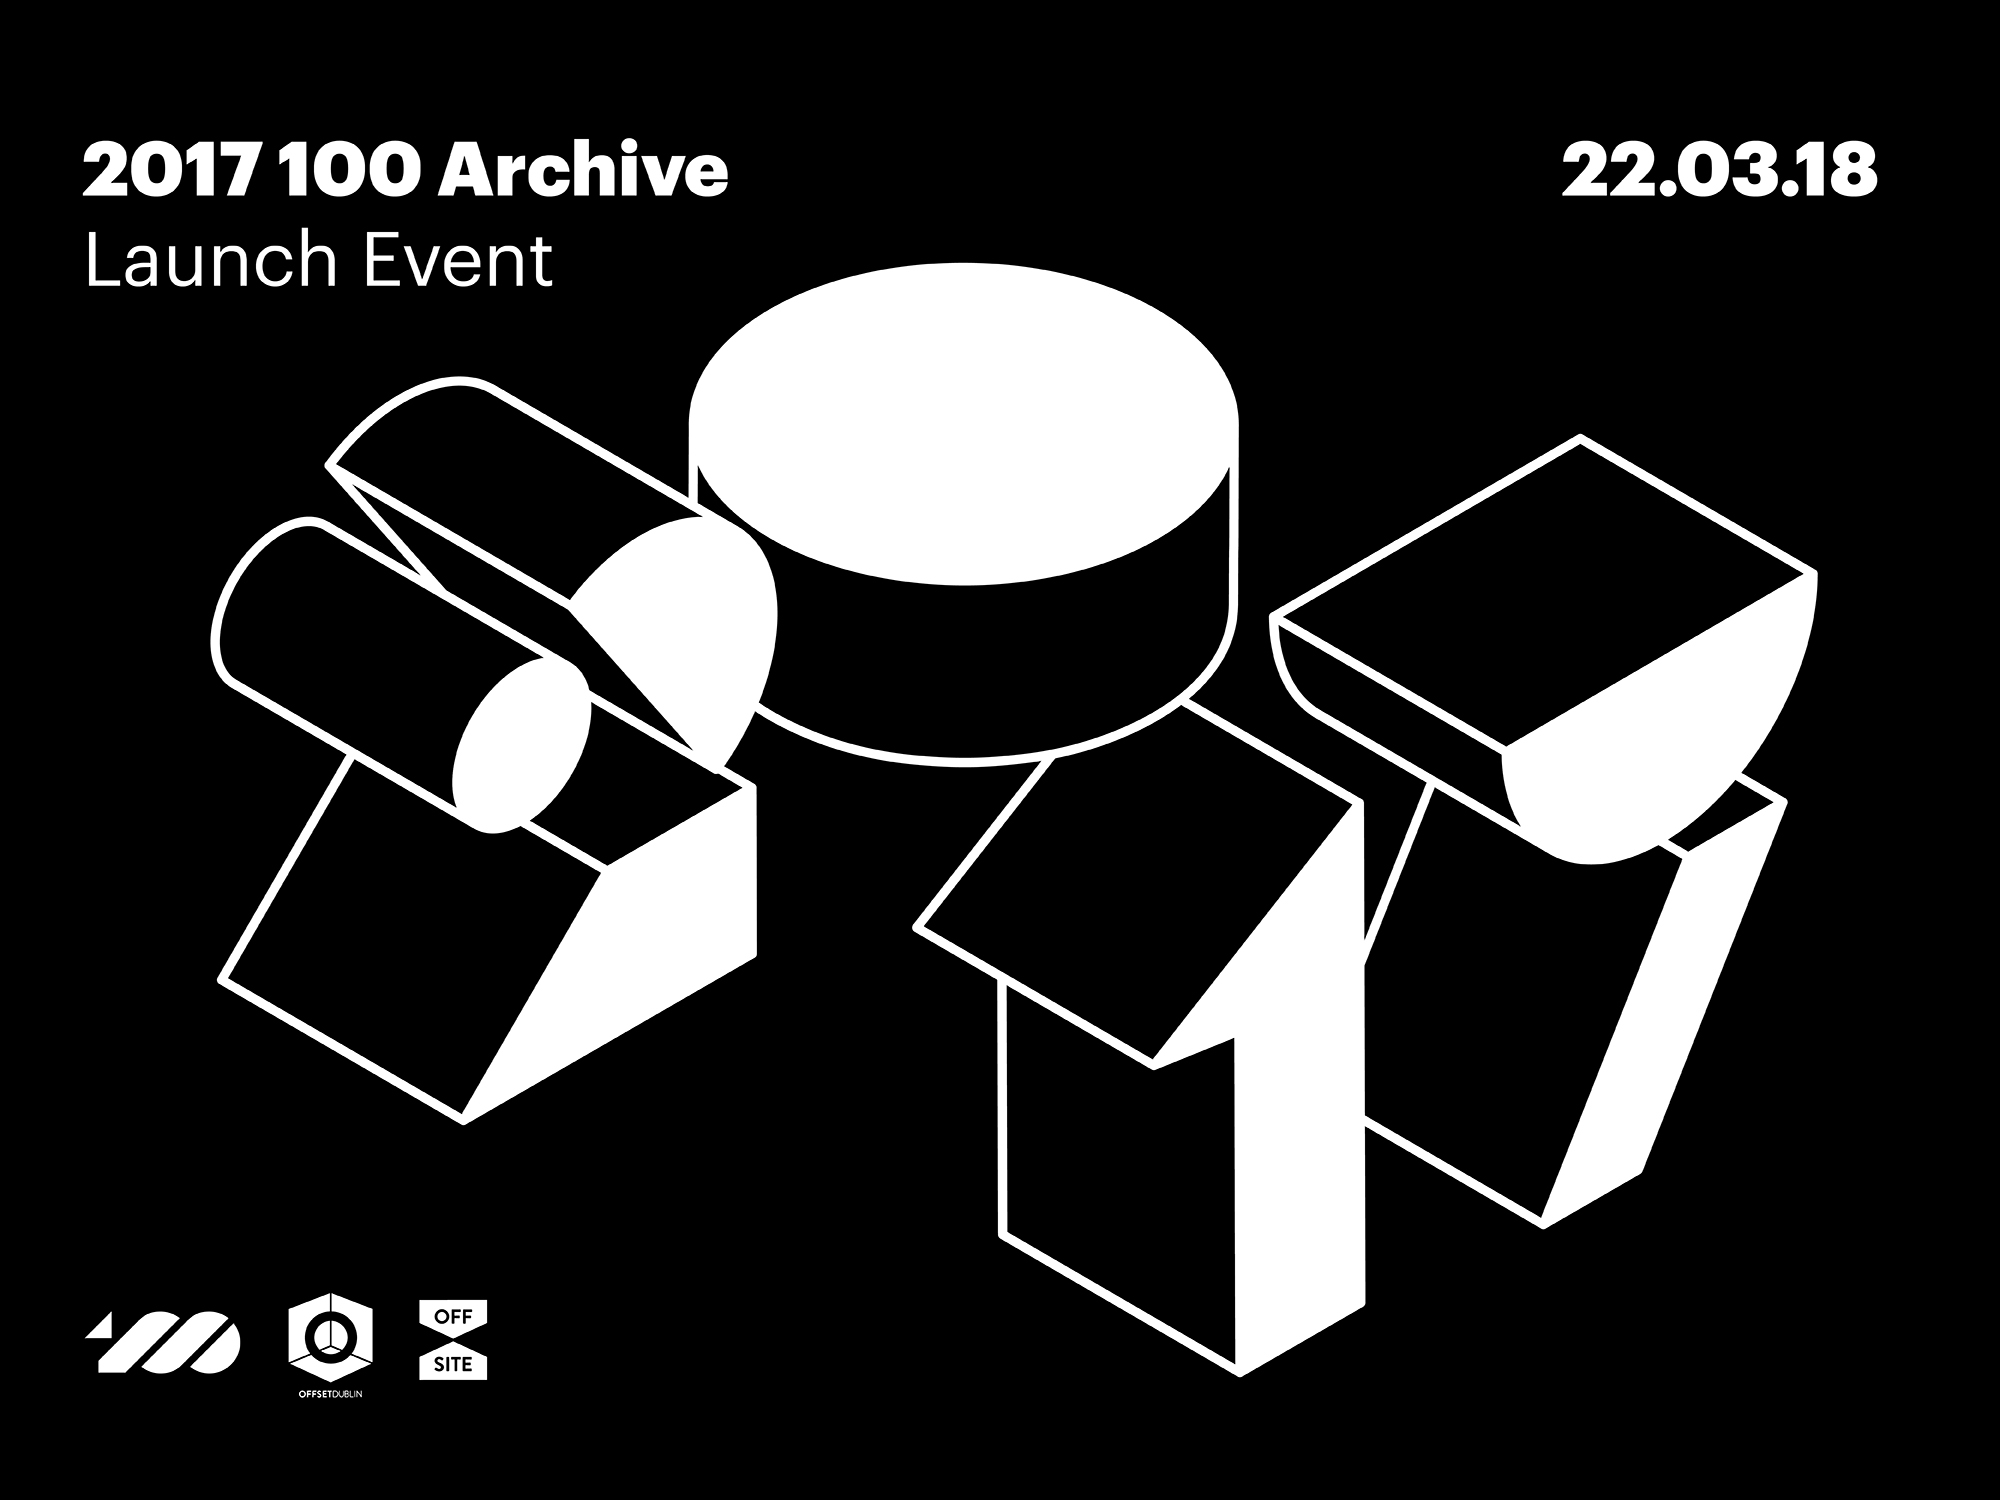 Cover image: 2017 100 Archive Launch